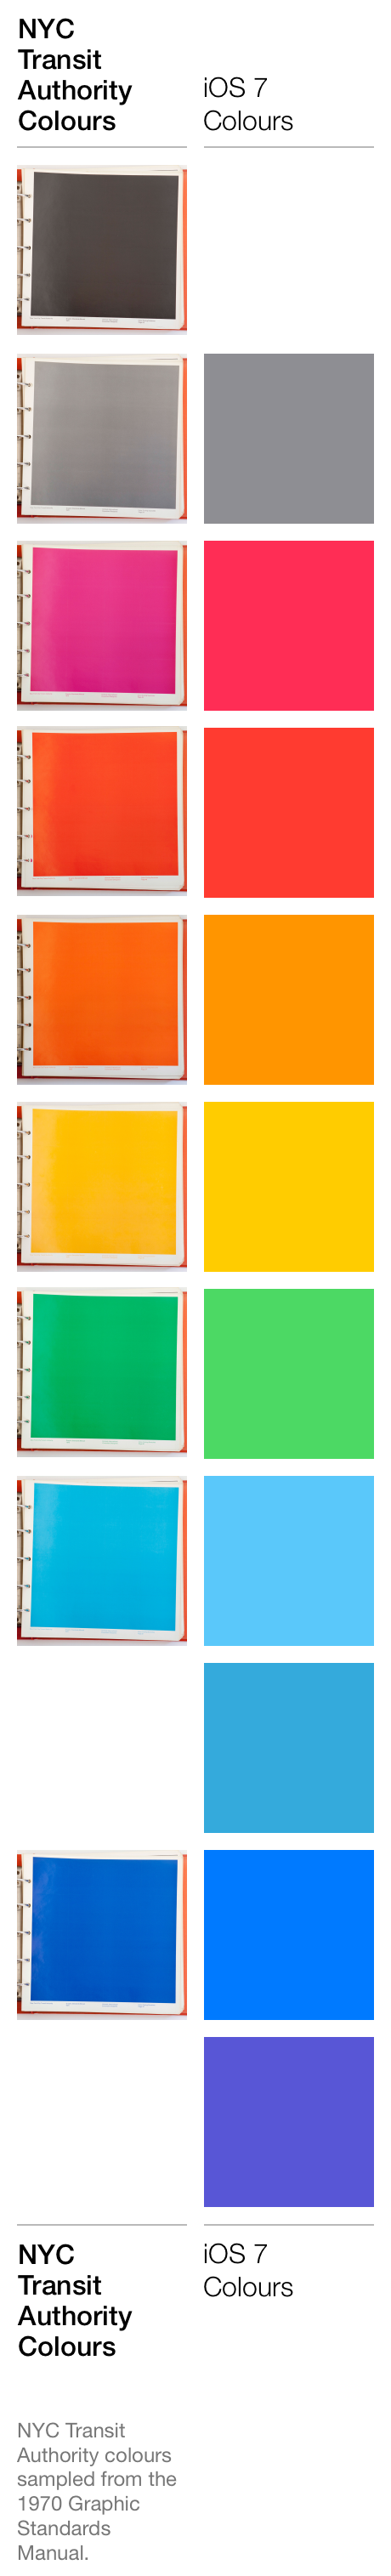 NYCTA-vs-iOS-7-colours@2x.png